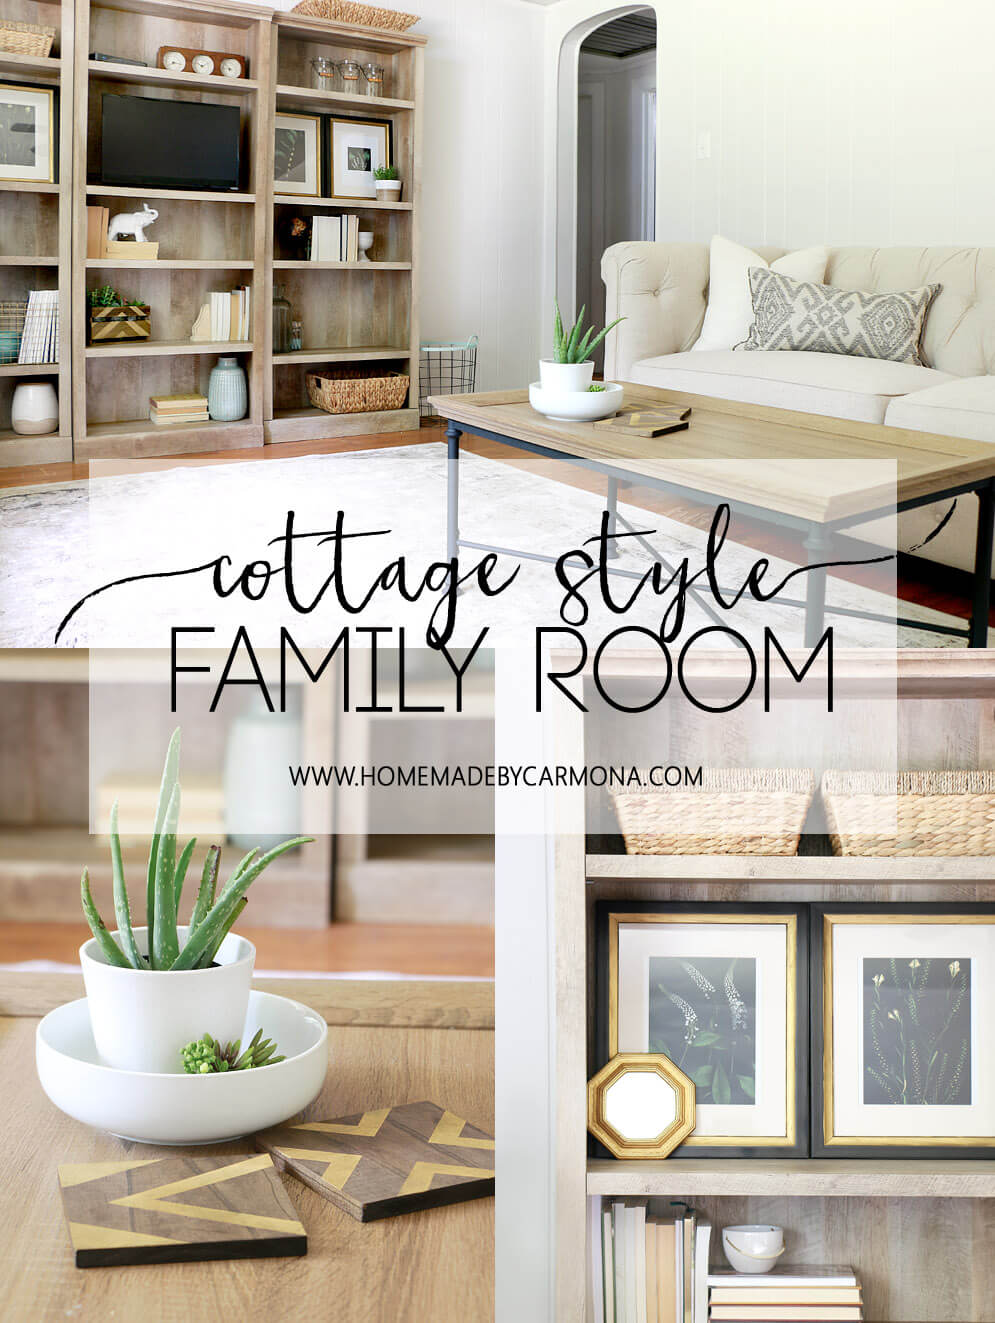 Cottage Style Family Room Makeover Tips